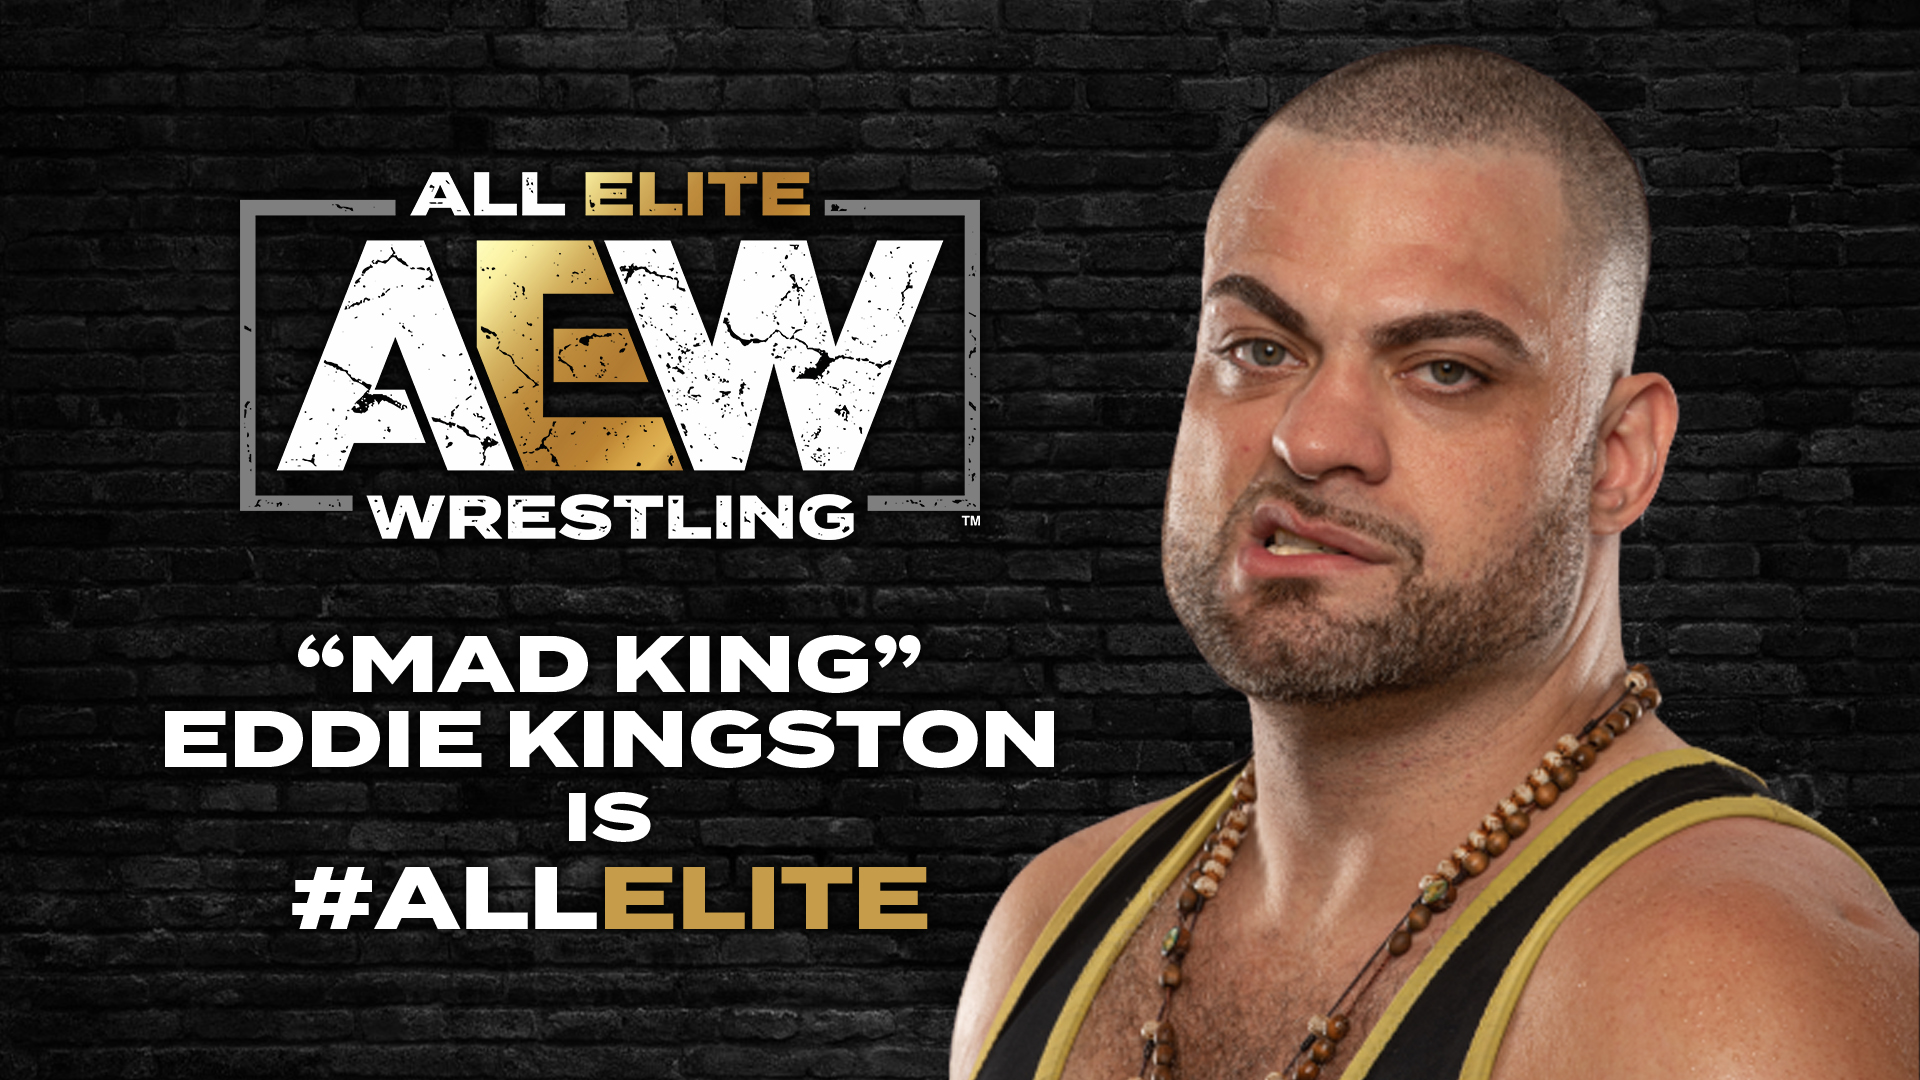 Eddie Kingston AEW